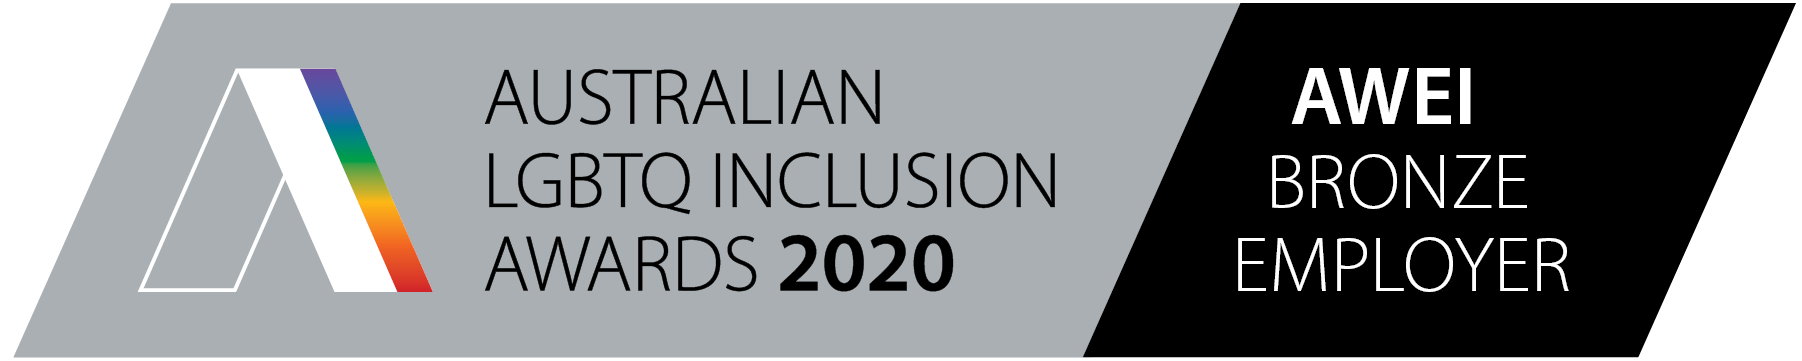 Australian LGBTQ Inclusions Awards 2020 AWEI Bronze Employer